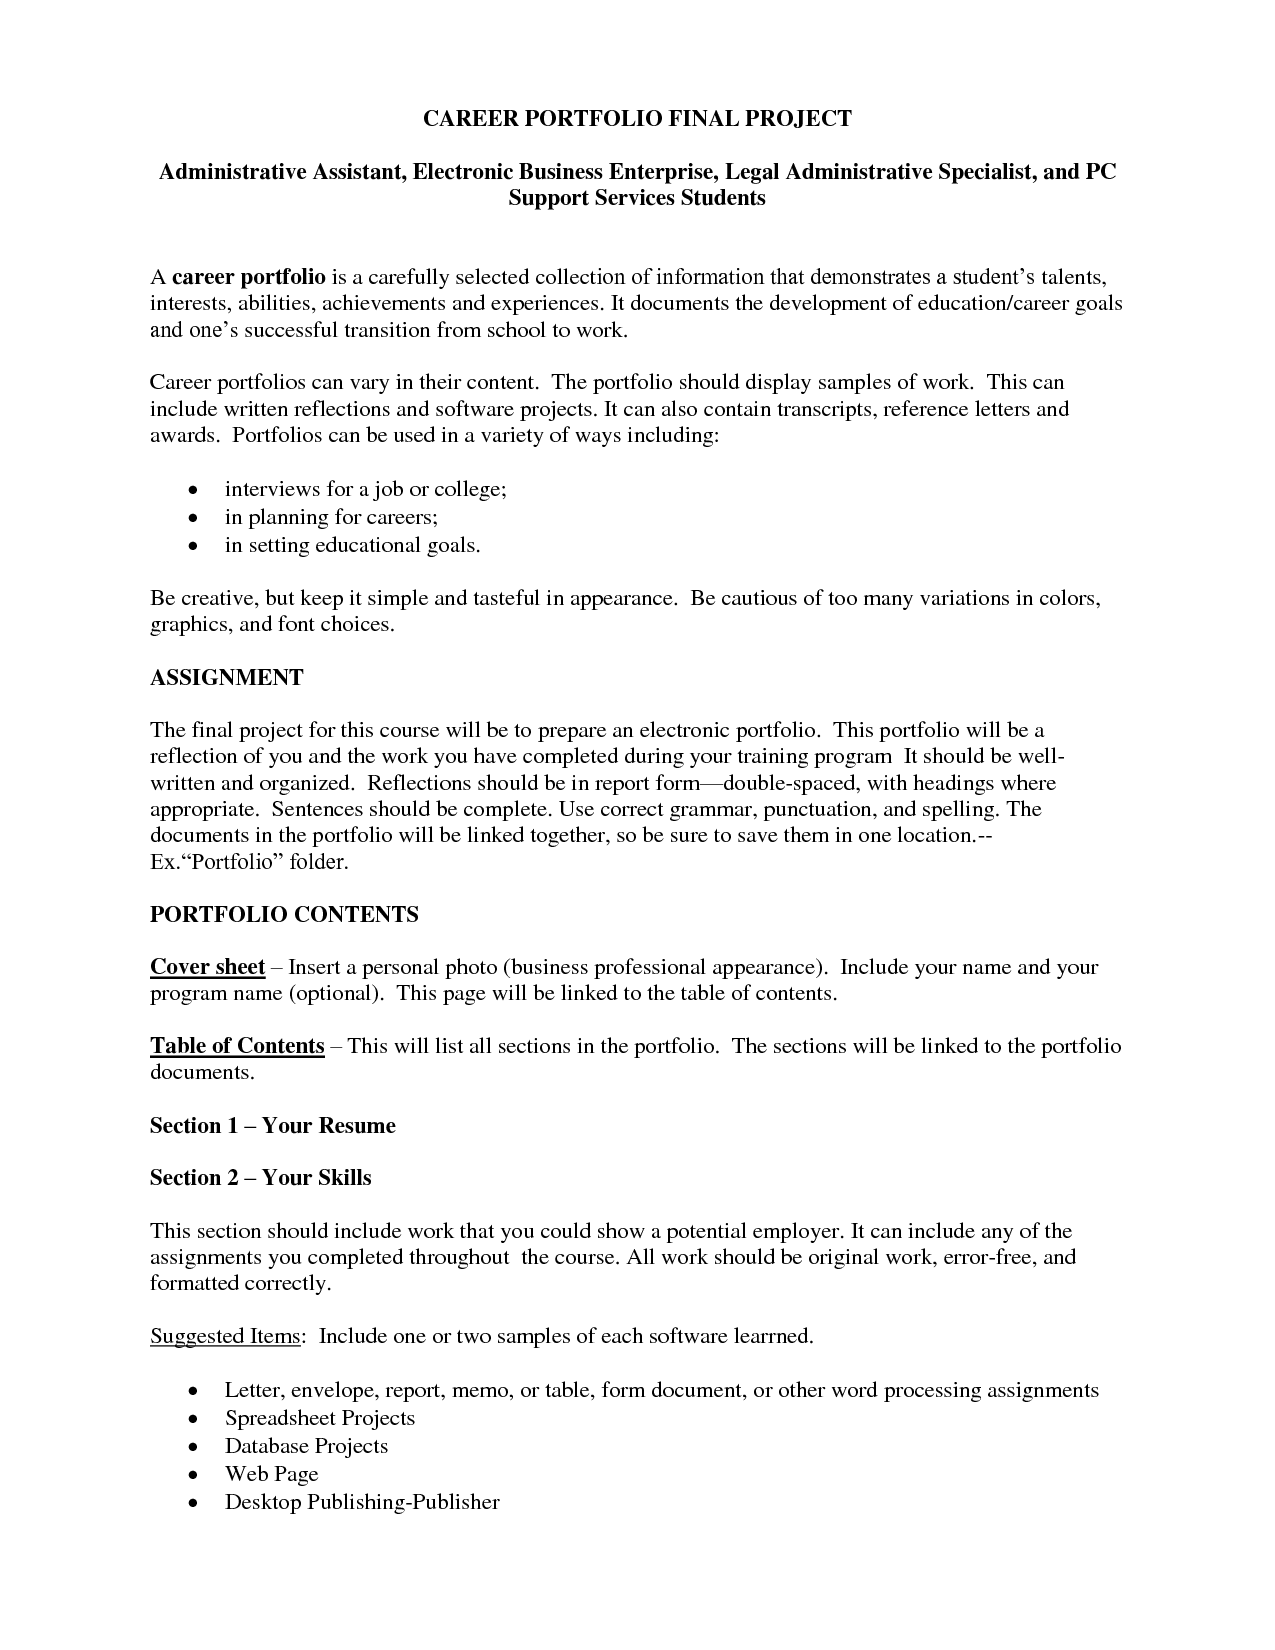 Legal Administrative Assistant Resume Sample Resume Sample